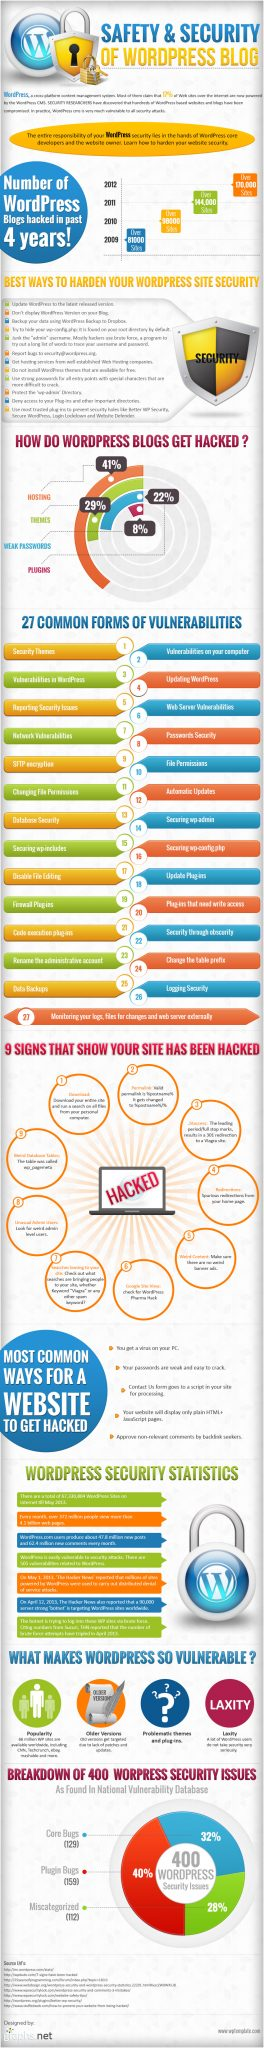 safety-and-security-of-wordpress-blog-infographic_51cbd58947056